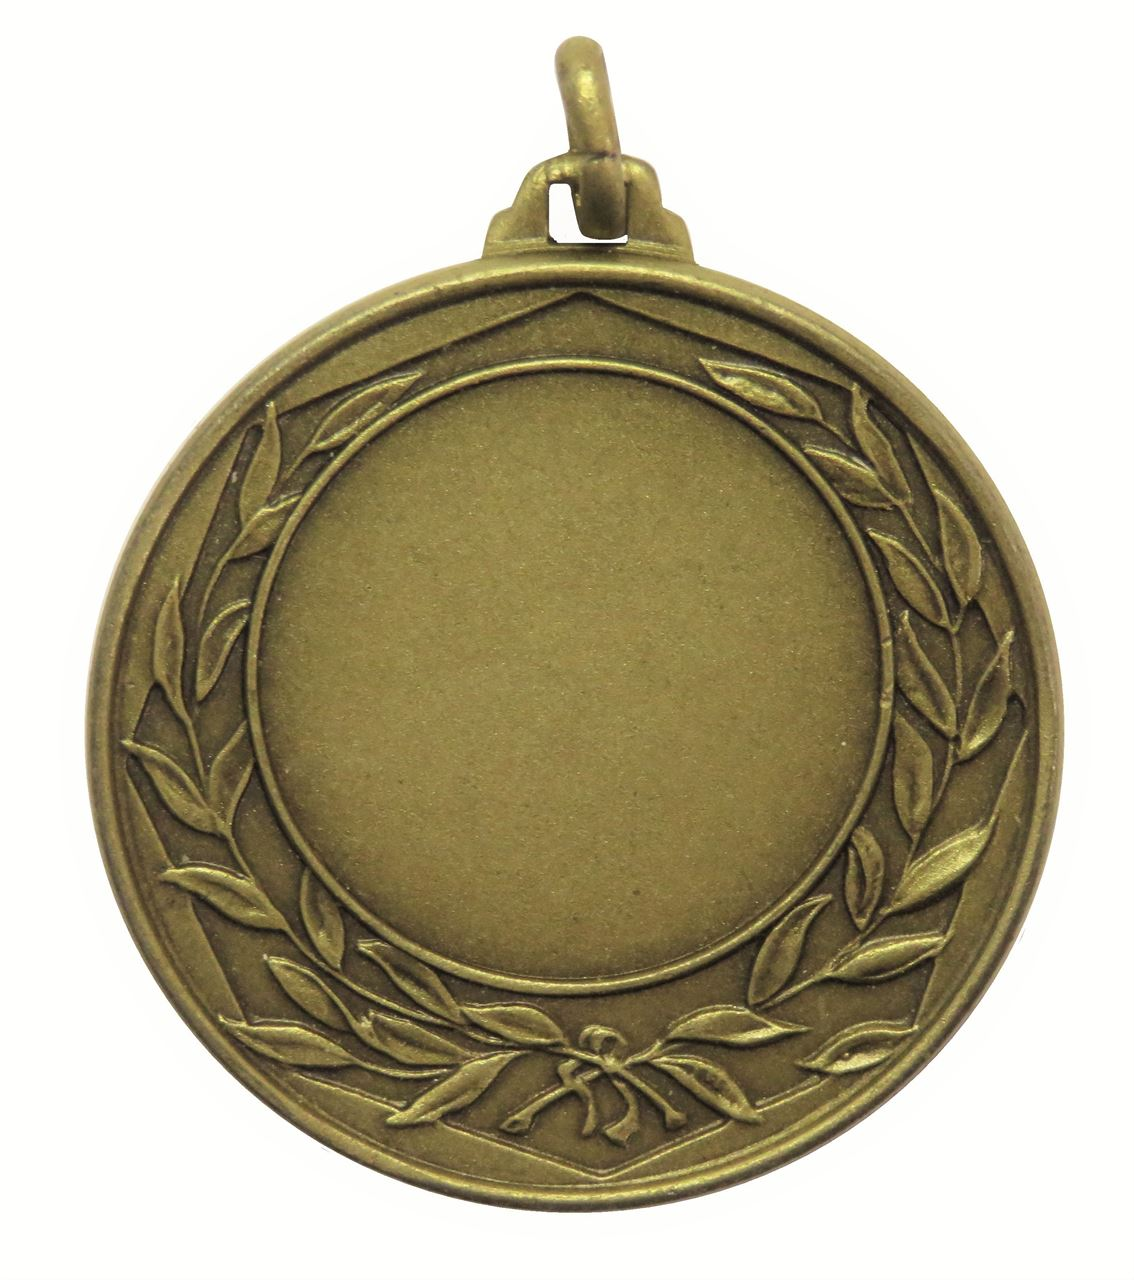 Bronze Quality Wreath Medal (size: 42mm) - 5405E